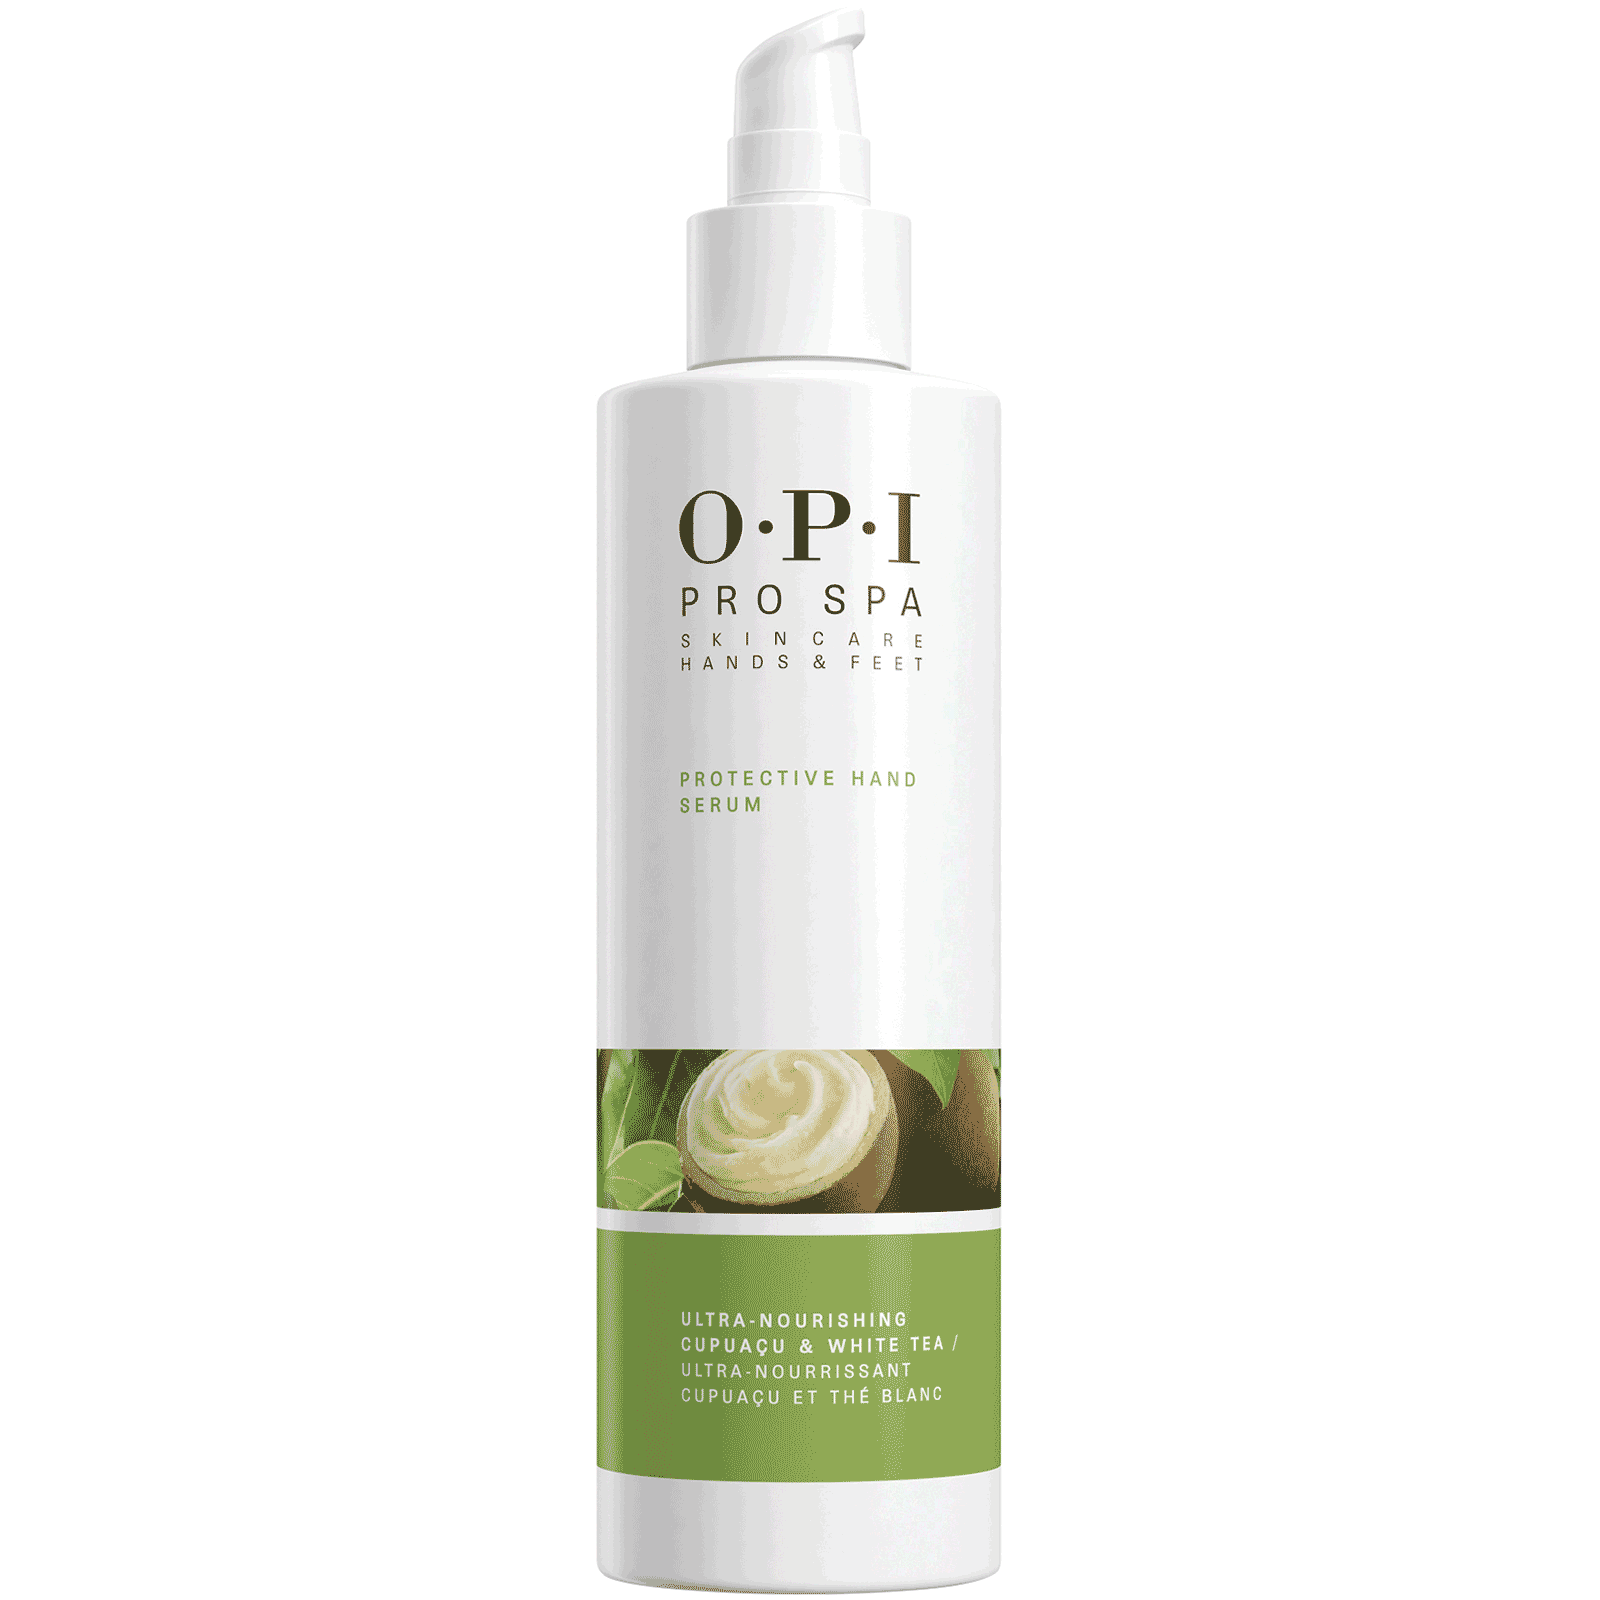 Pro Spa Protective Hand Serum